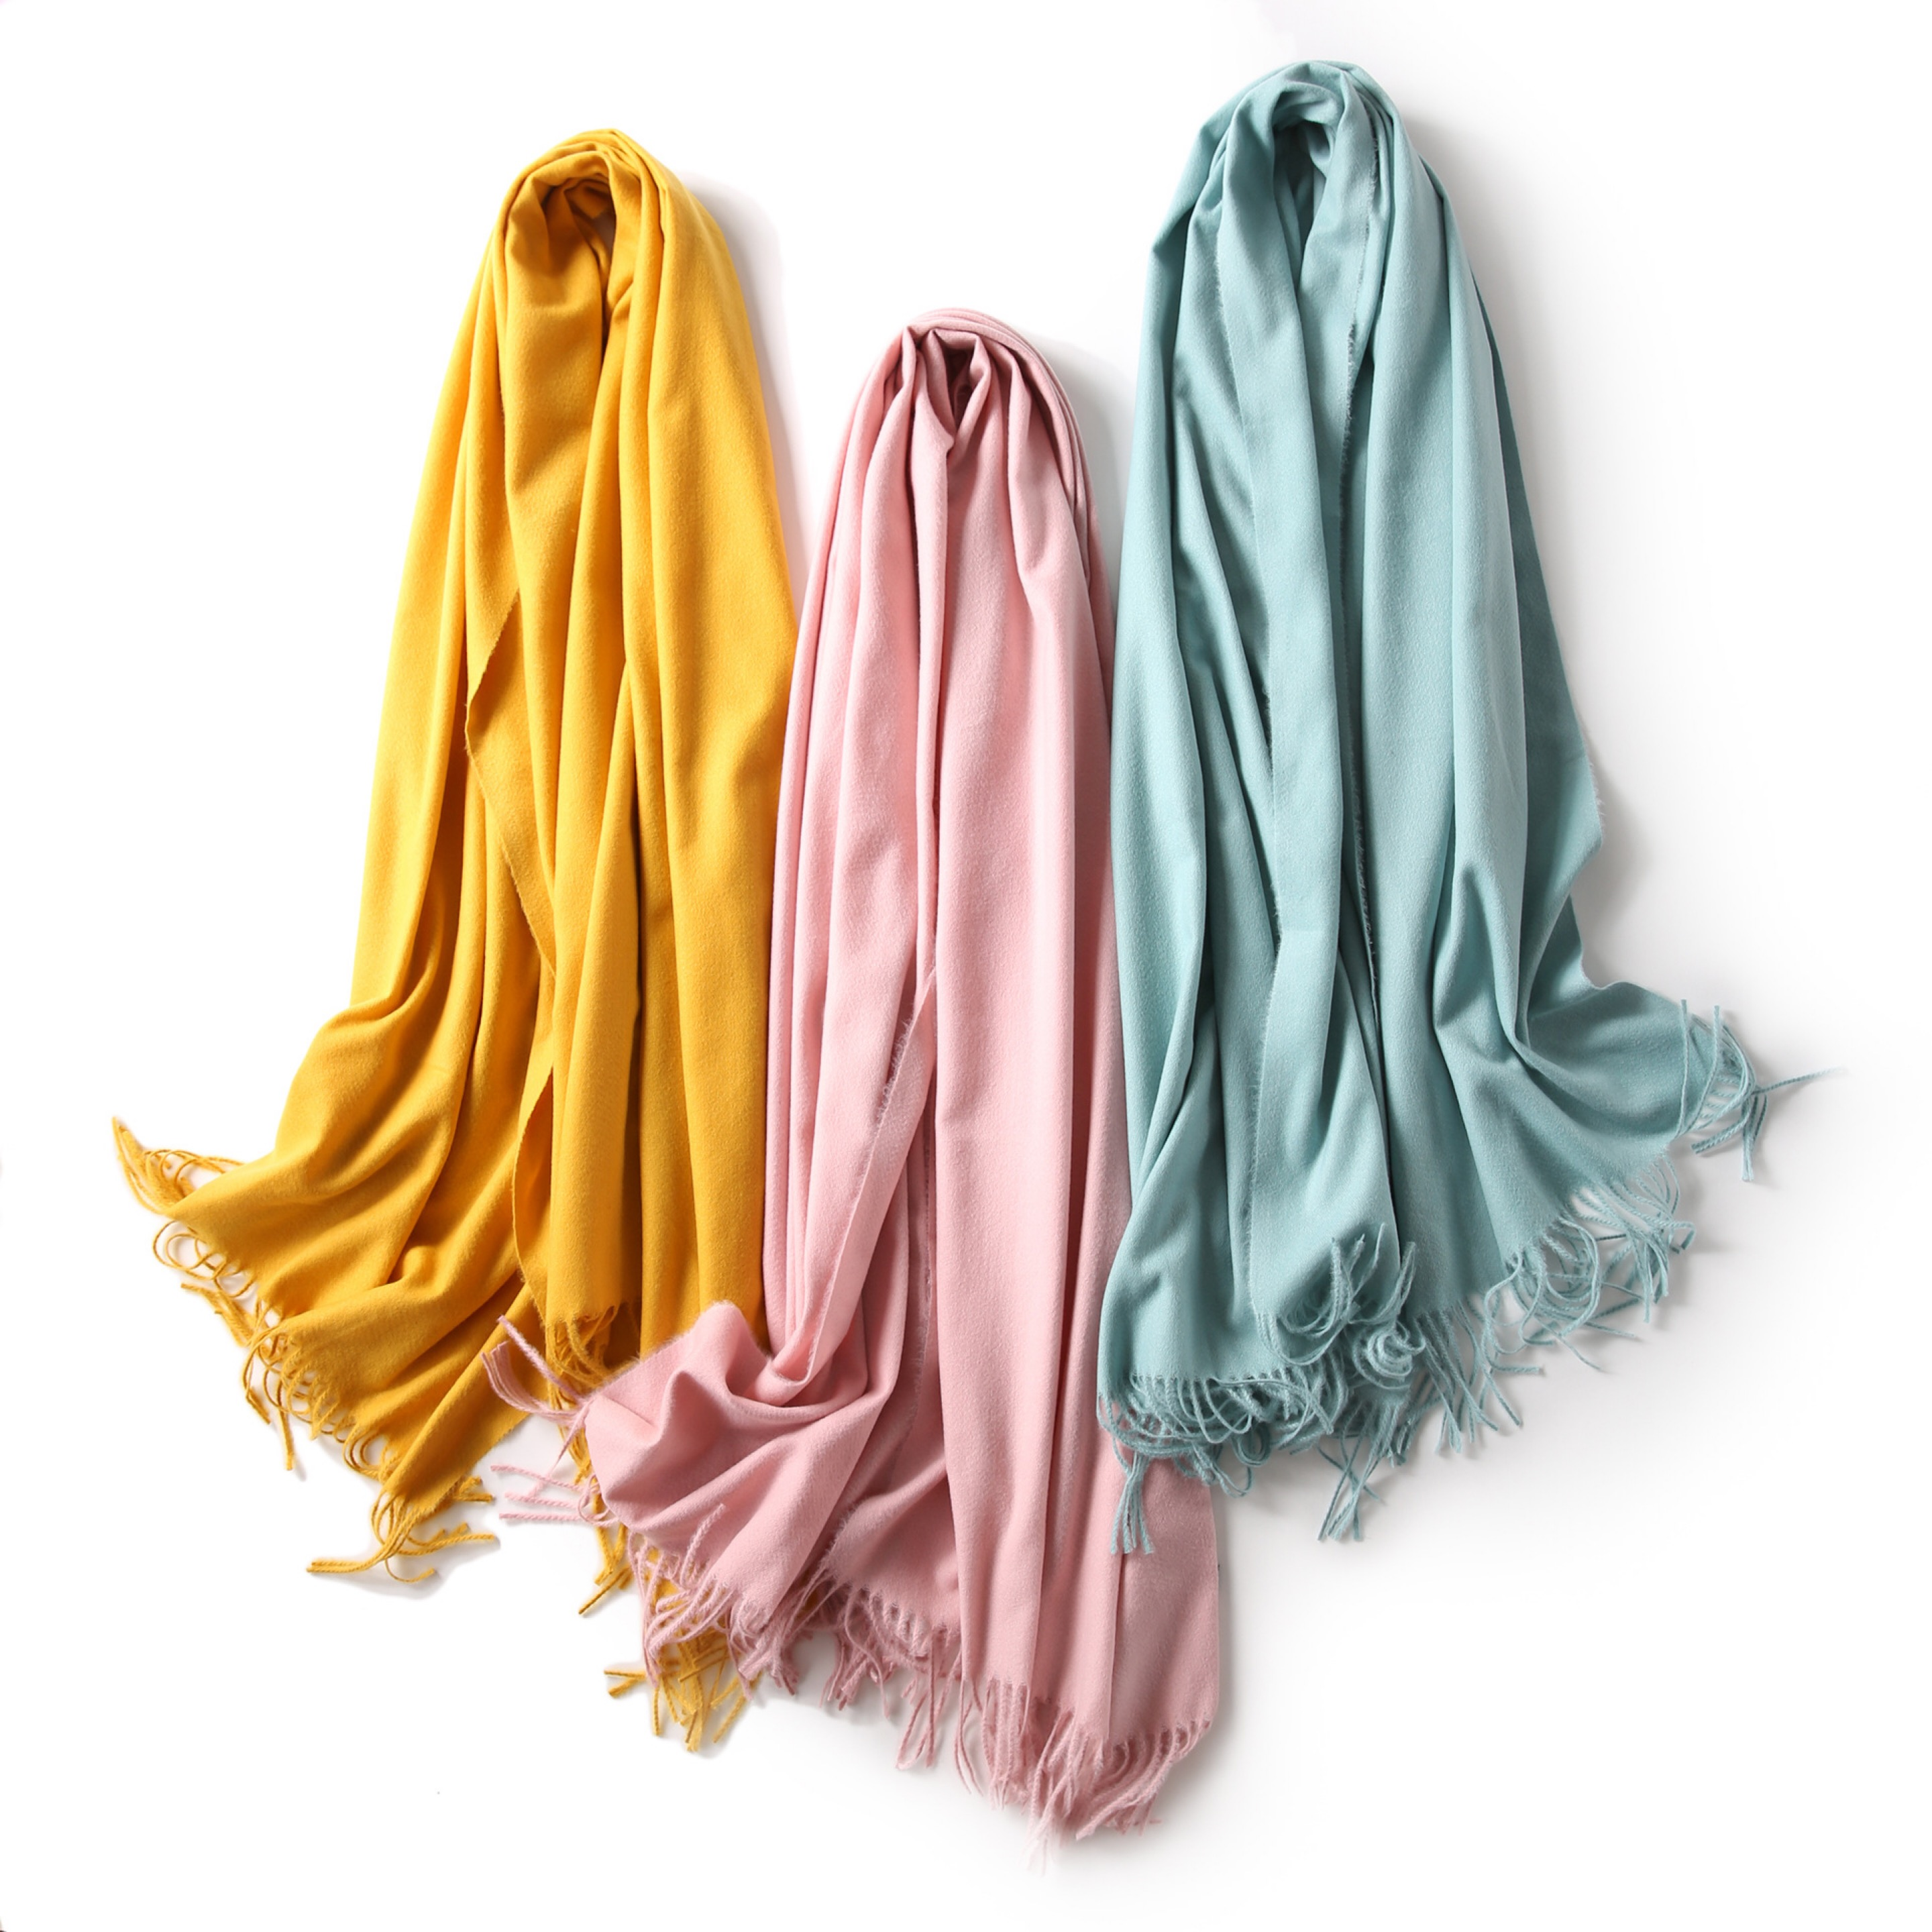 Korean Autumn and Winter New Style Fringed lady's <strong>scarf</strong> Heating Pure Colored <strong>Scarf</strong>